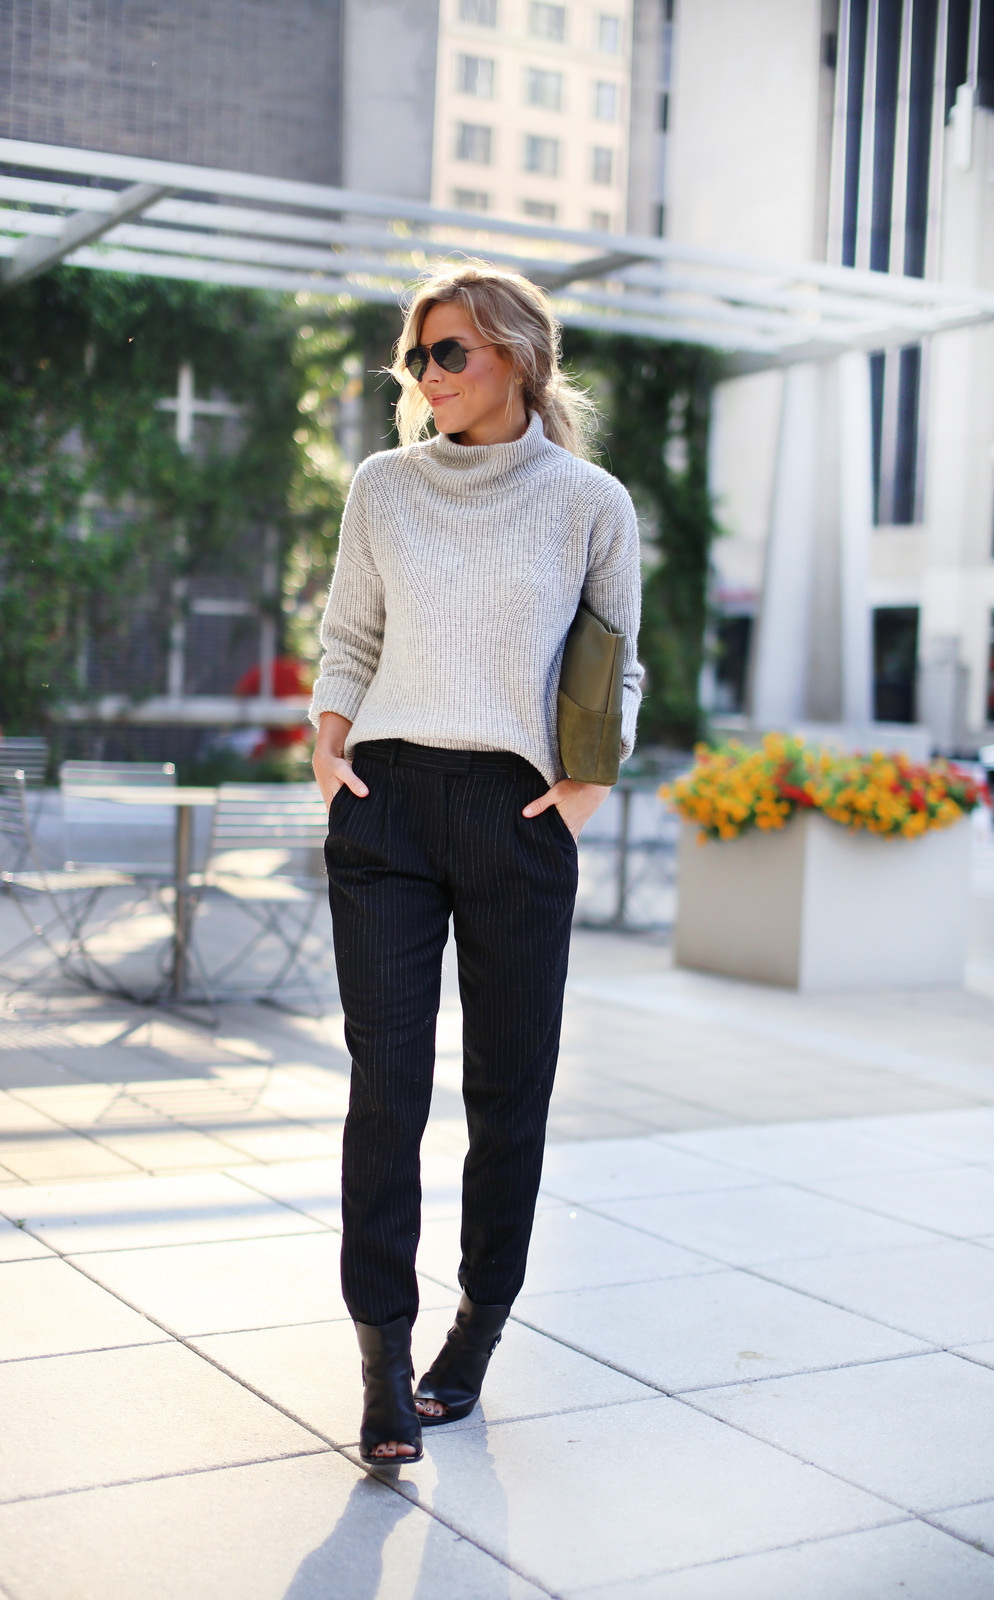 Mary Seng is wearing grey jumper from French Connection, trousers from Michael Kors, shoes from Rag & Bone, clutch from Elaine Turner and the sunglasses are from RayBan